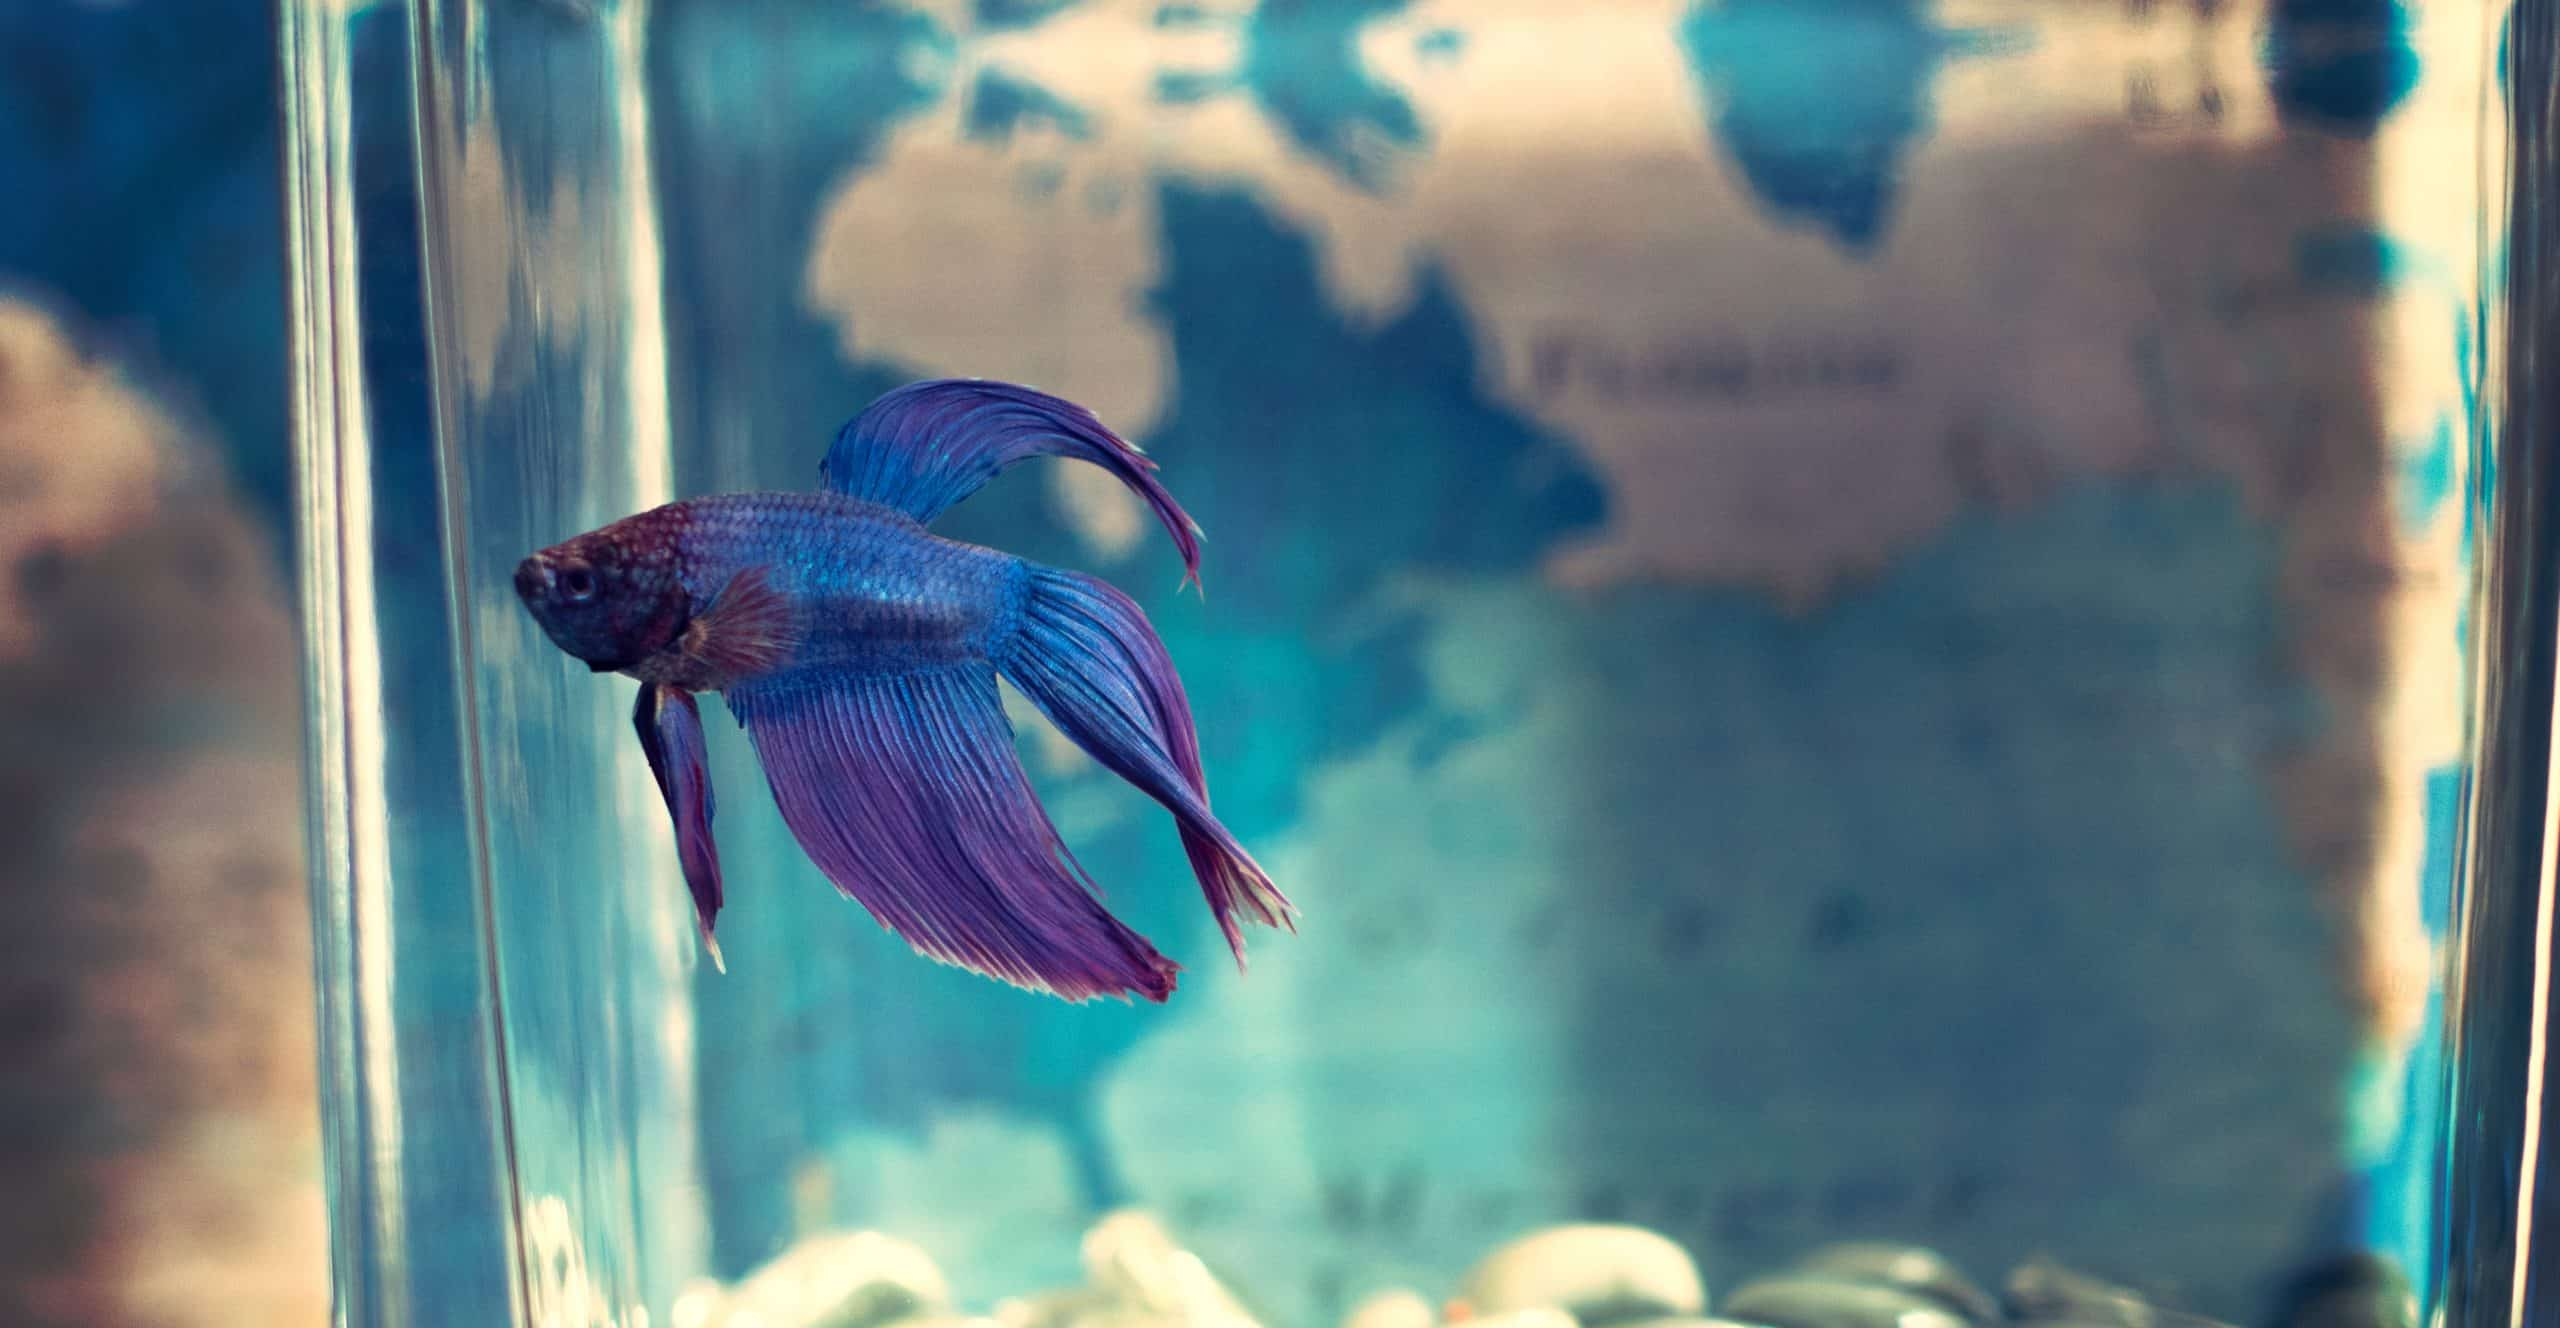 Top 13 Beautiful Types of Betta Fish Categorised by Tail [With Pictures]